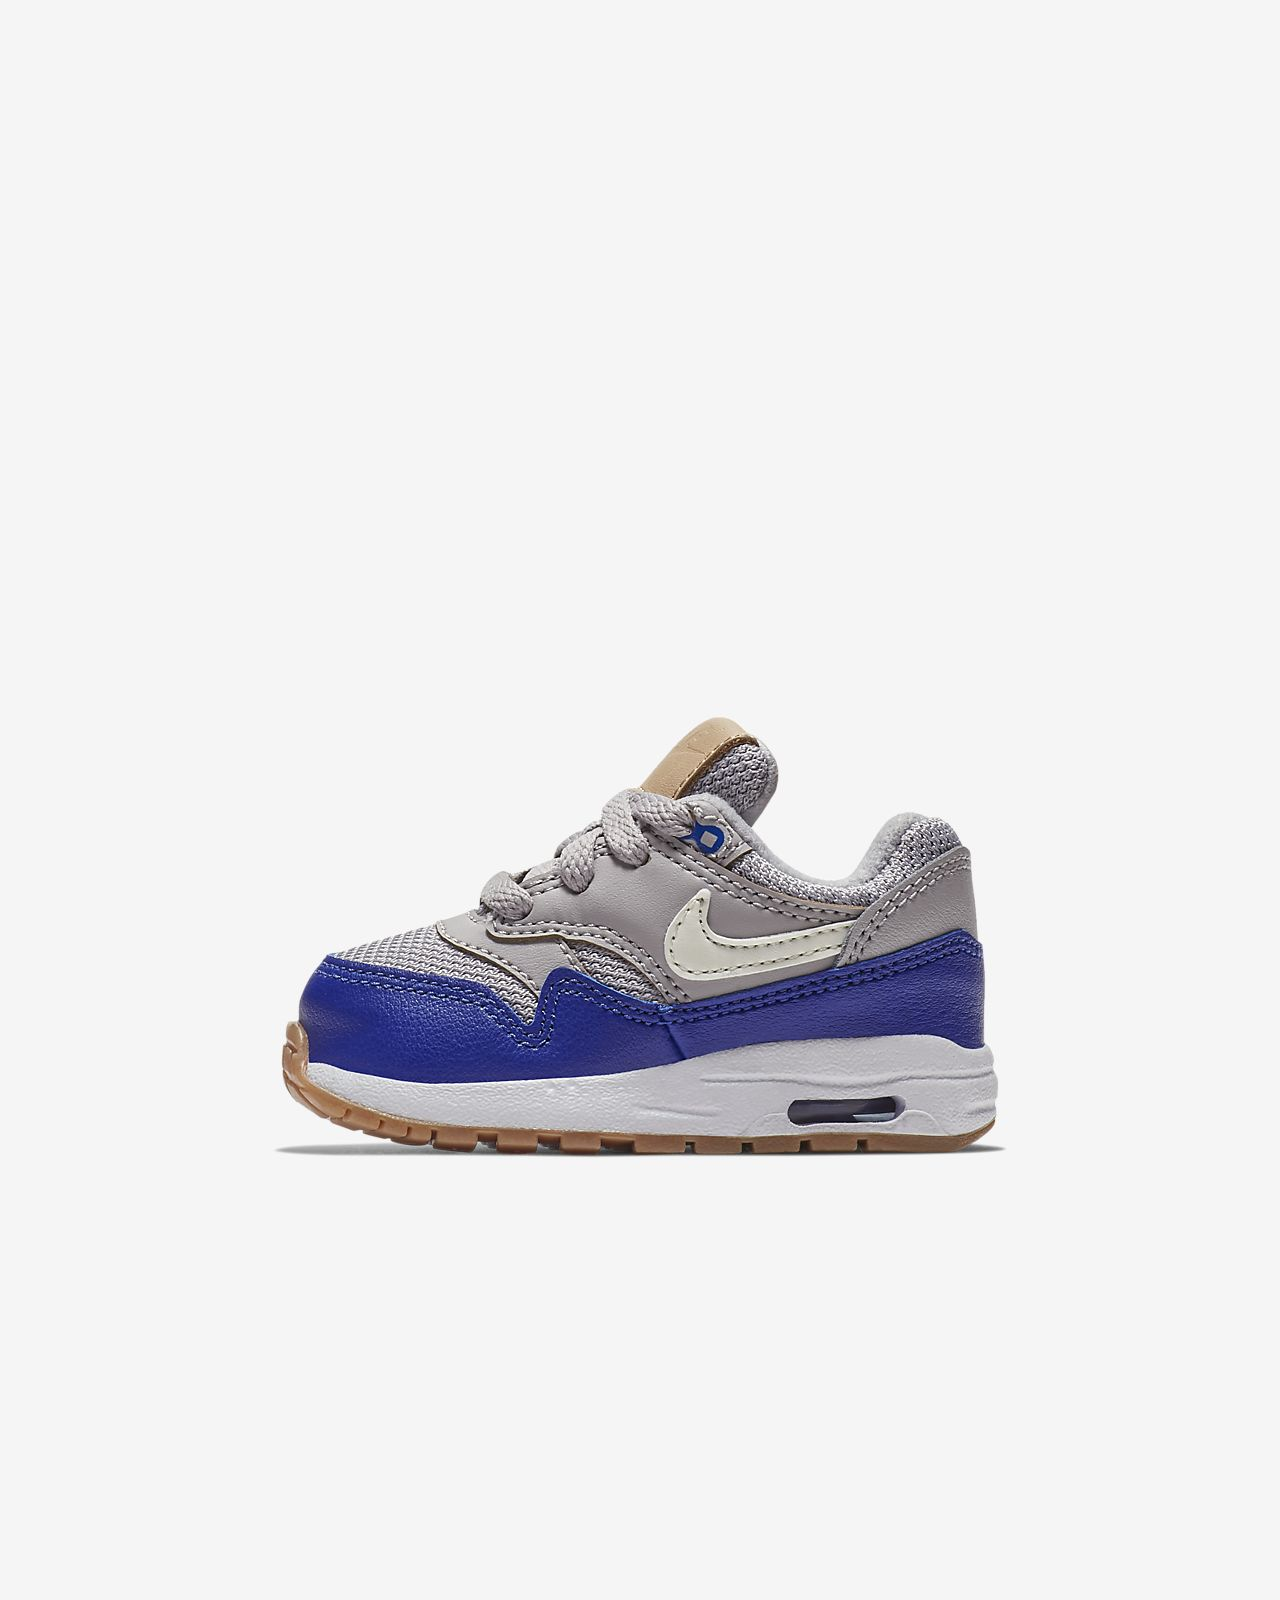 the latest c14ef 94509 Nike Air Max 1 Schoen voor babyspeuters